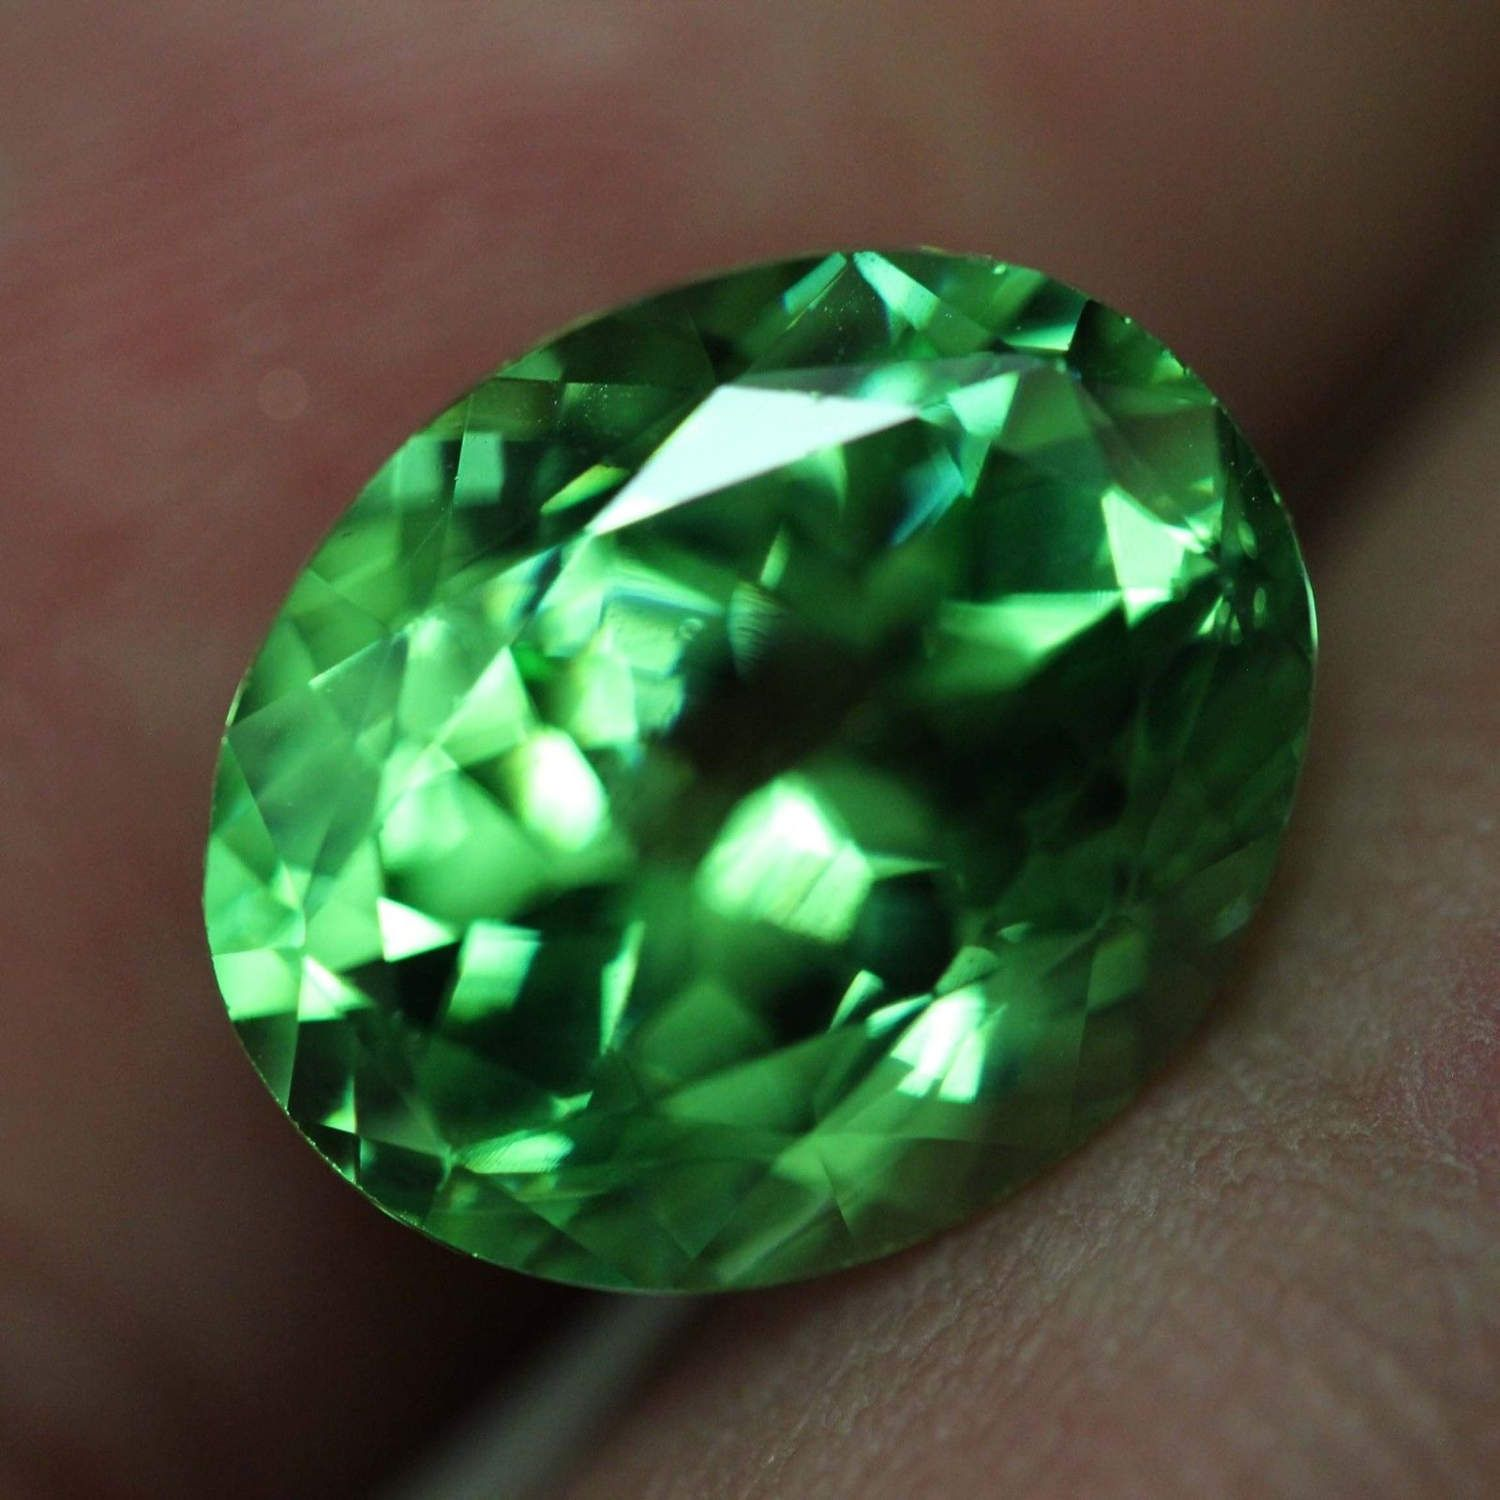 Certified Rare loose Natural untreated Green Oval cut Tsavorite Garnet 6.005ct by crystalanchor on Etsy